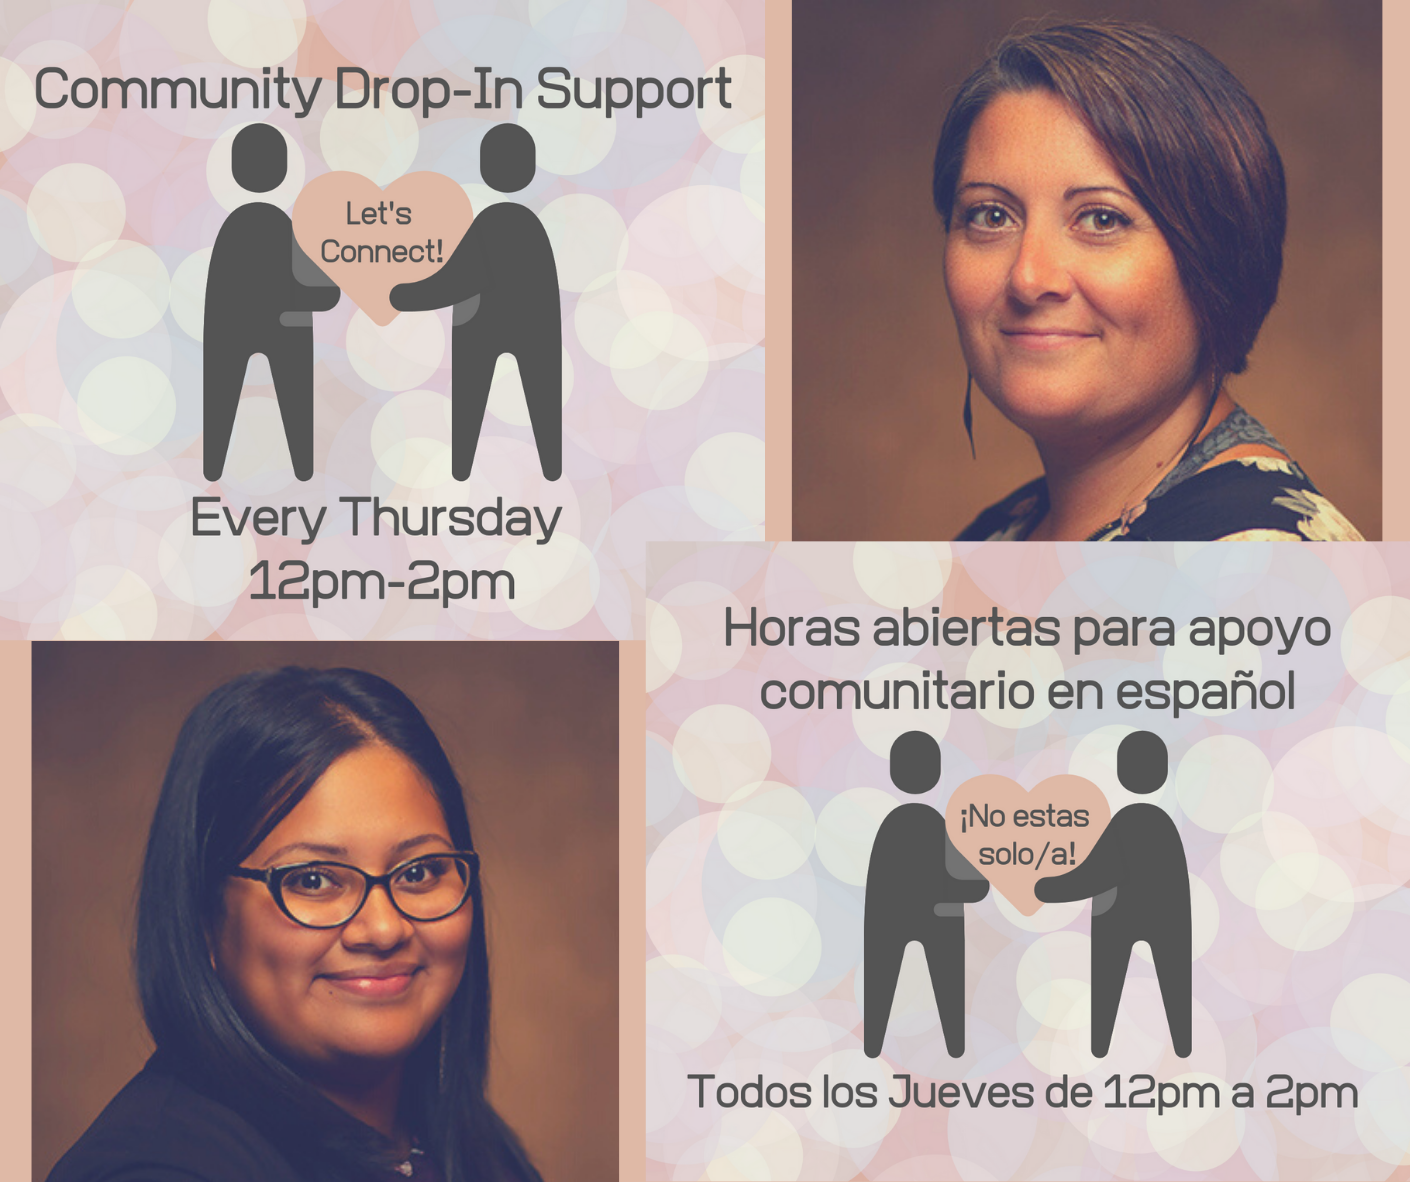 Community Drop-In Support